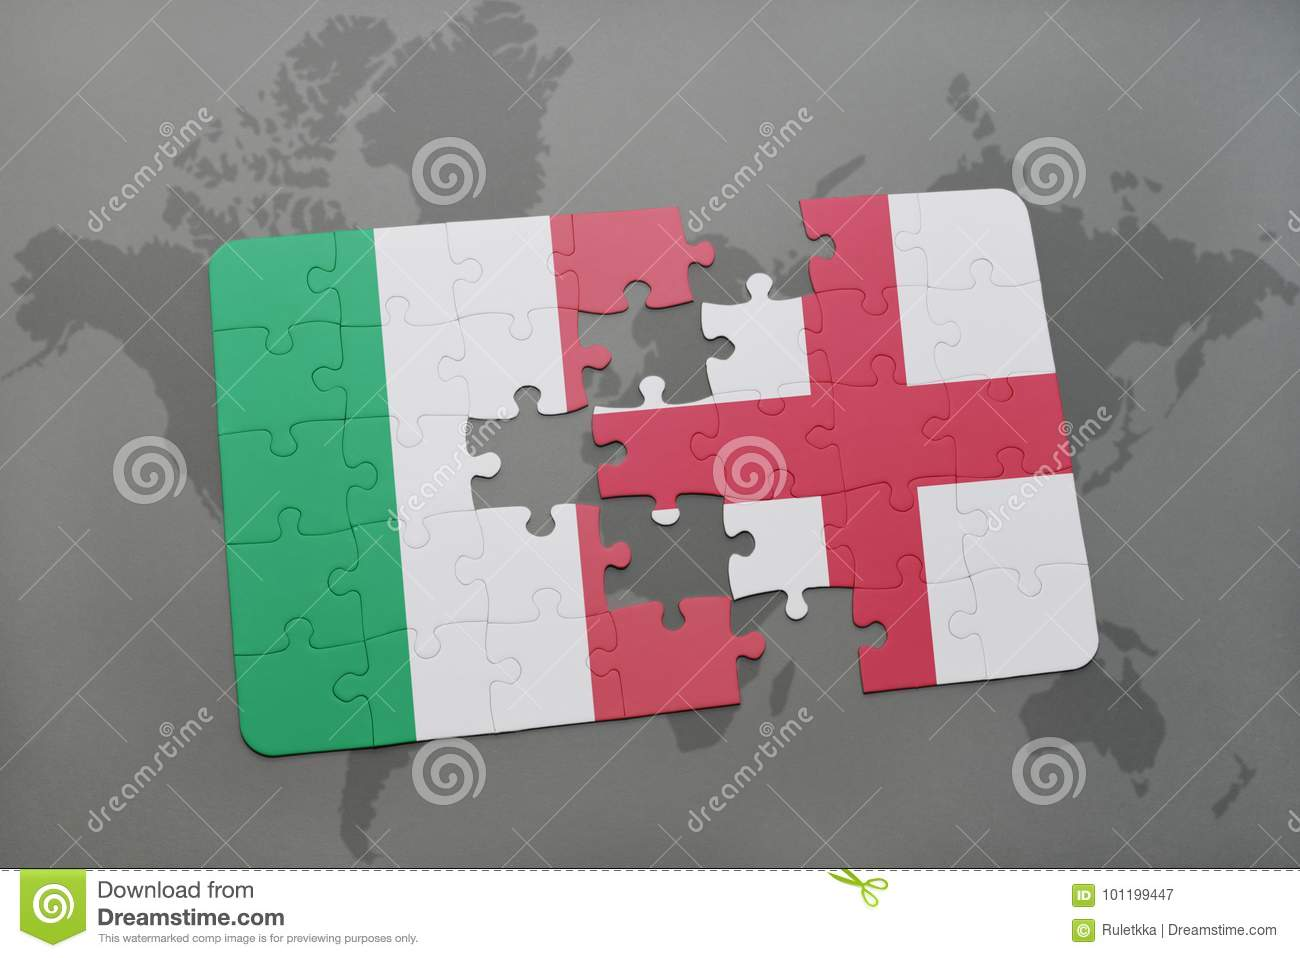 Puzzle with the national flag of italy and england on a world map download puzzle with the national flag of italy and england on a world map background gumiabroncs Choice Image